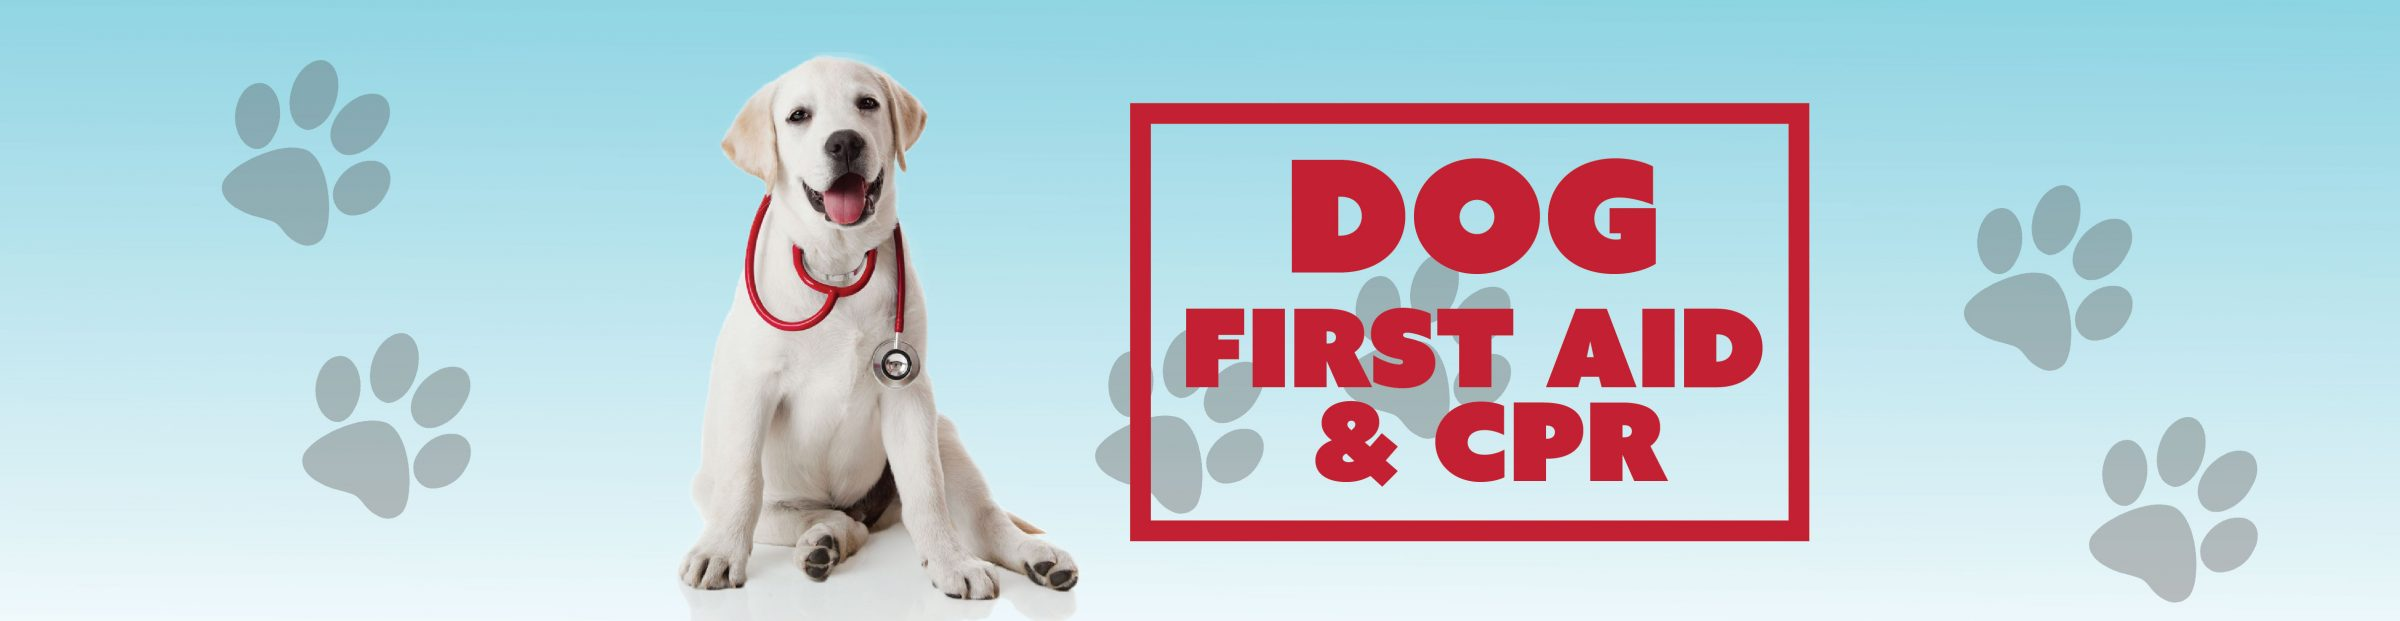 Dog First Aid Cpr Greenville County Parks Recreation Tourism